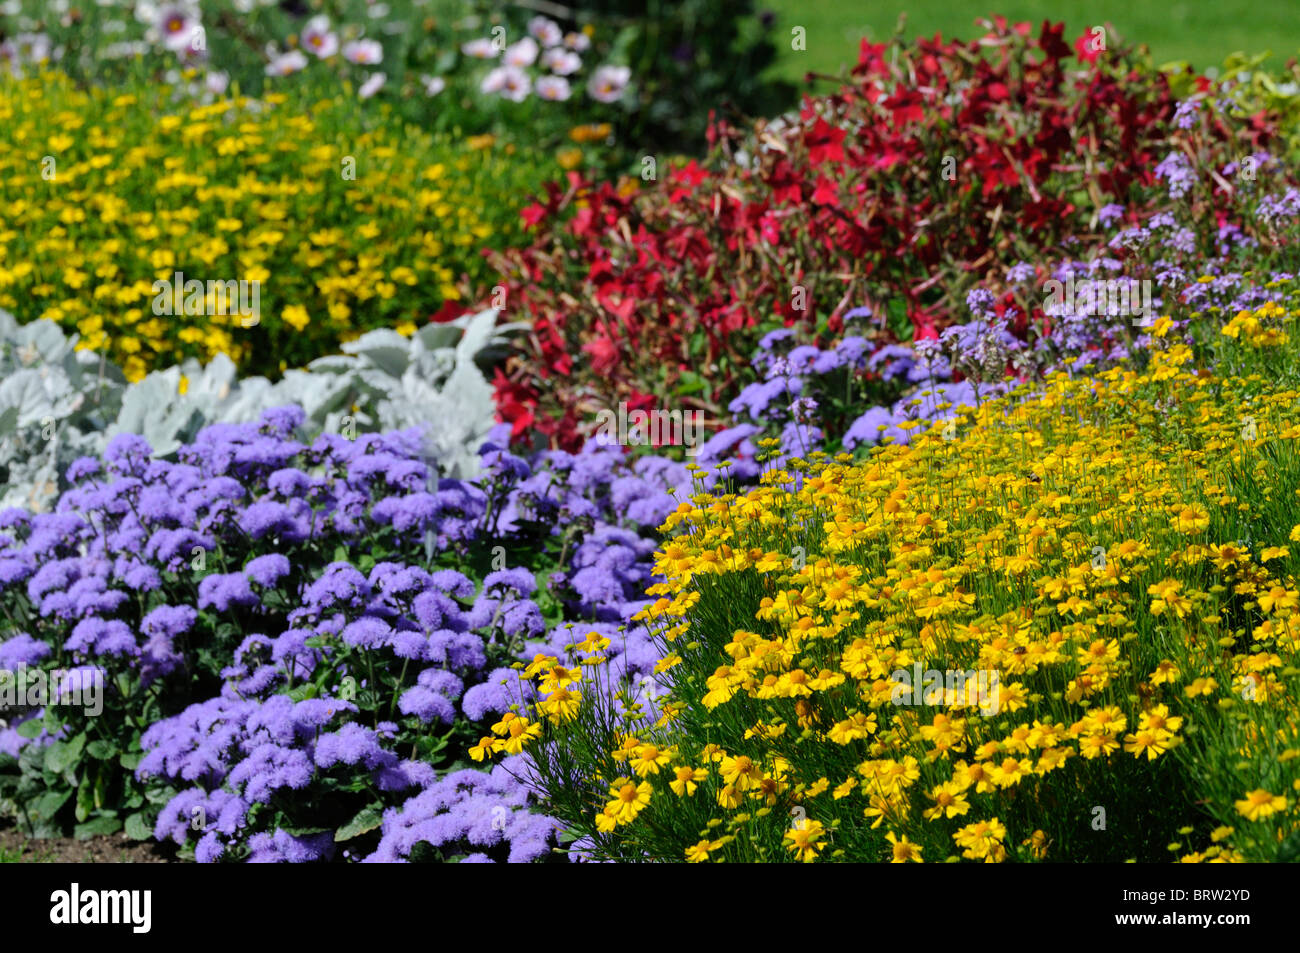 herbaceous perennial garden border mixed plants flowers blooms, Beautiful flower